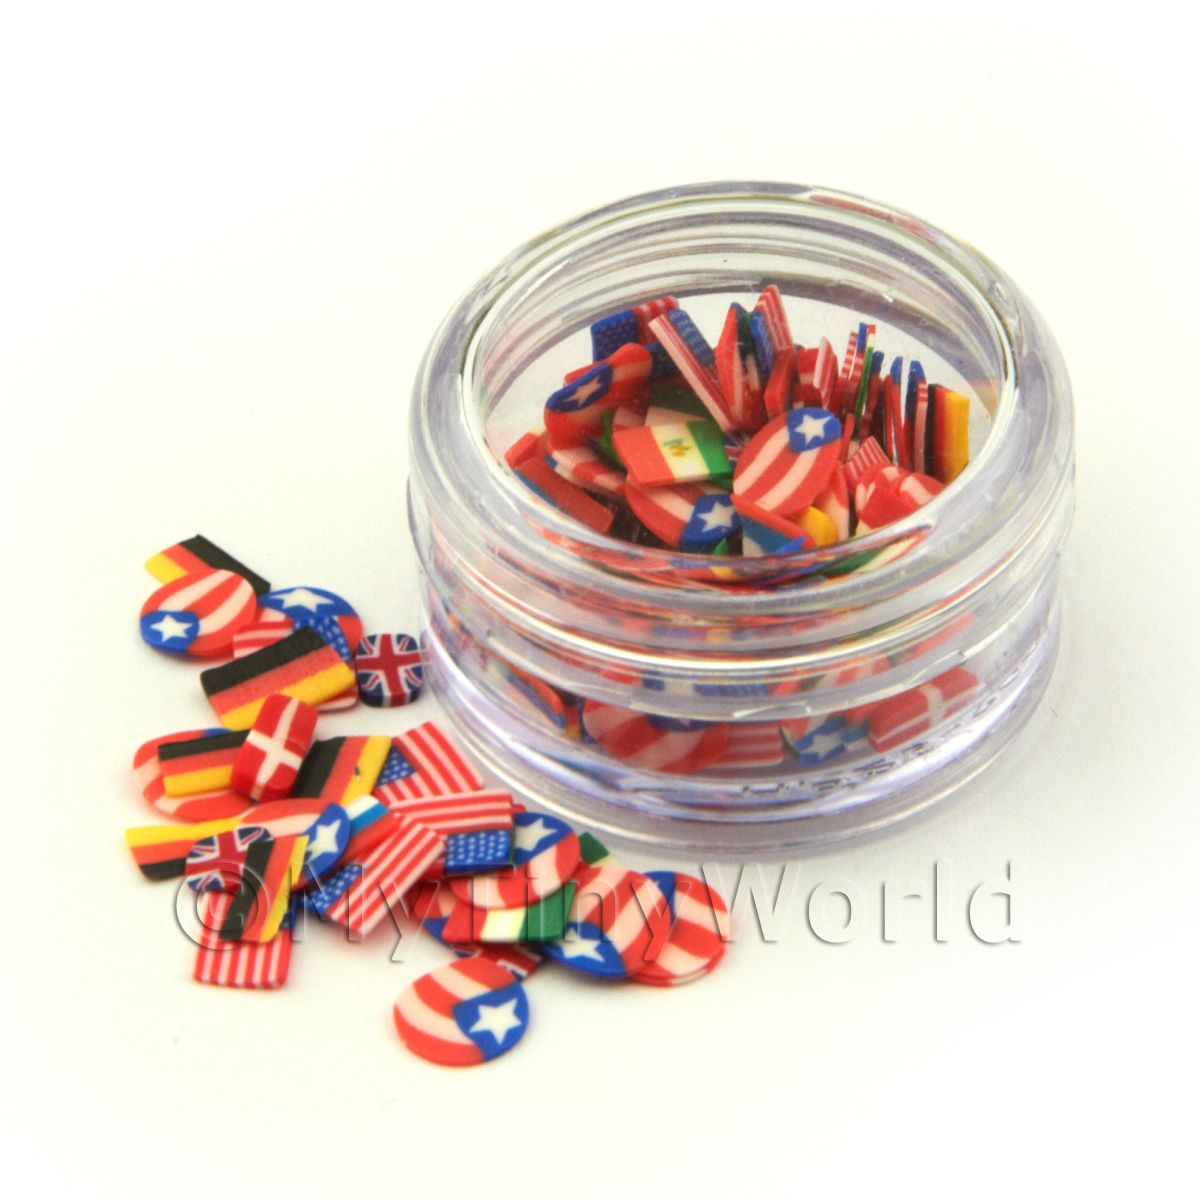 Flag Themed Nail Art Pot Containing 120 Slices